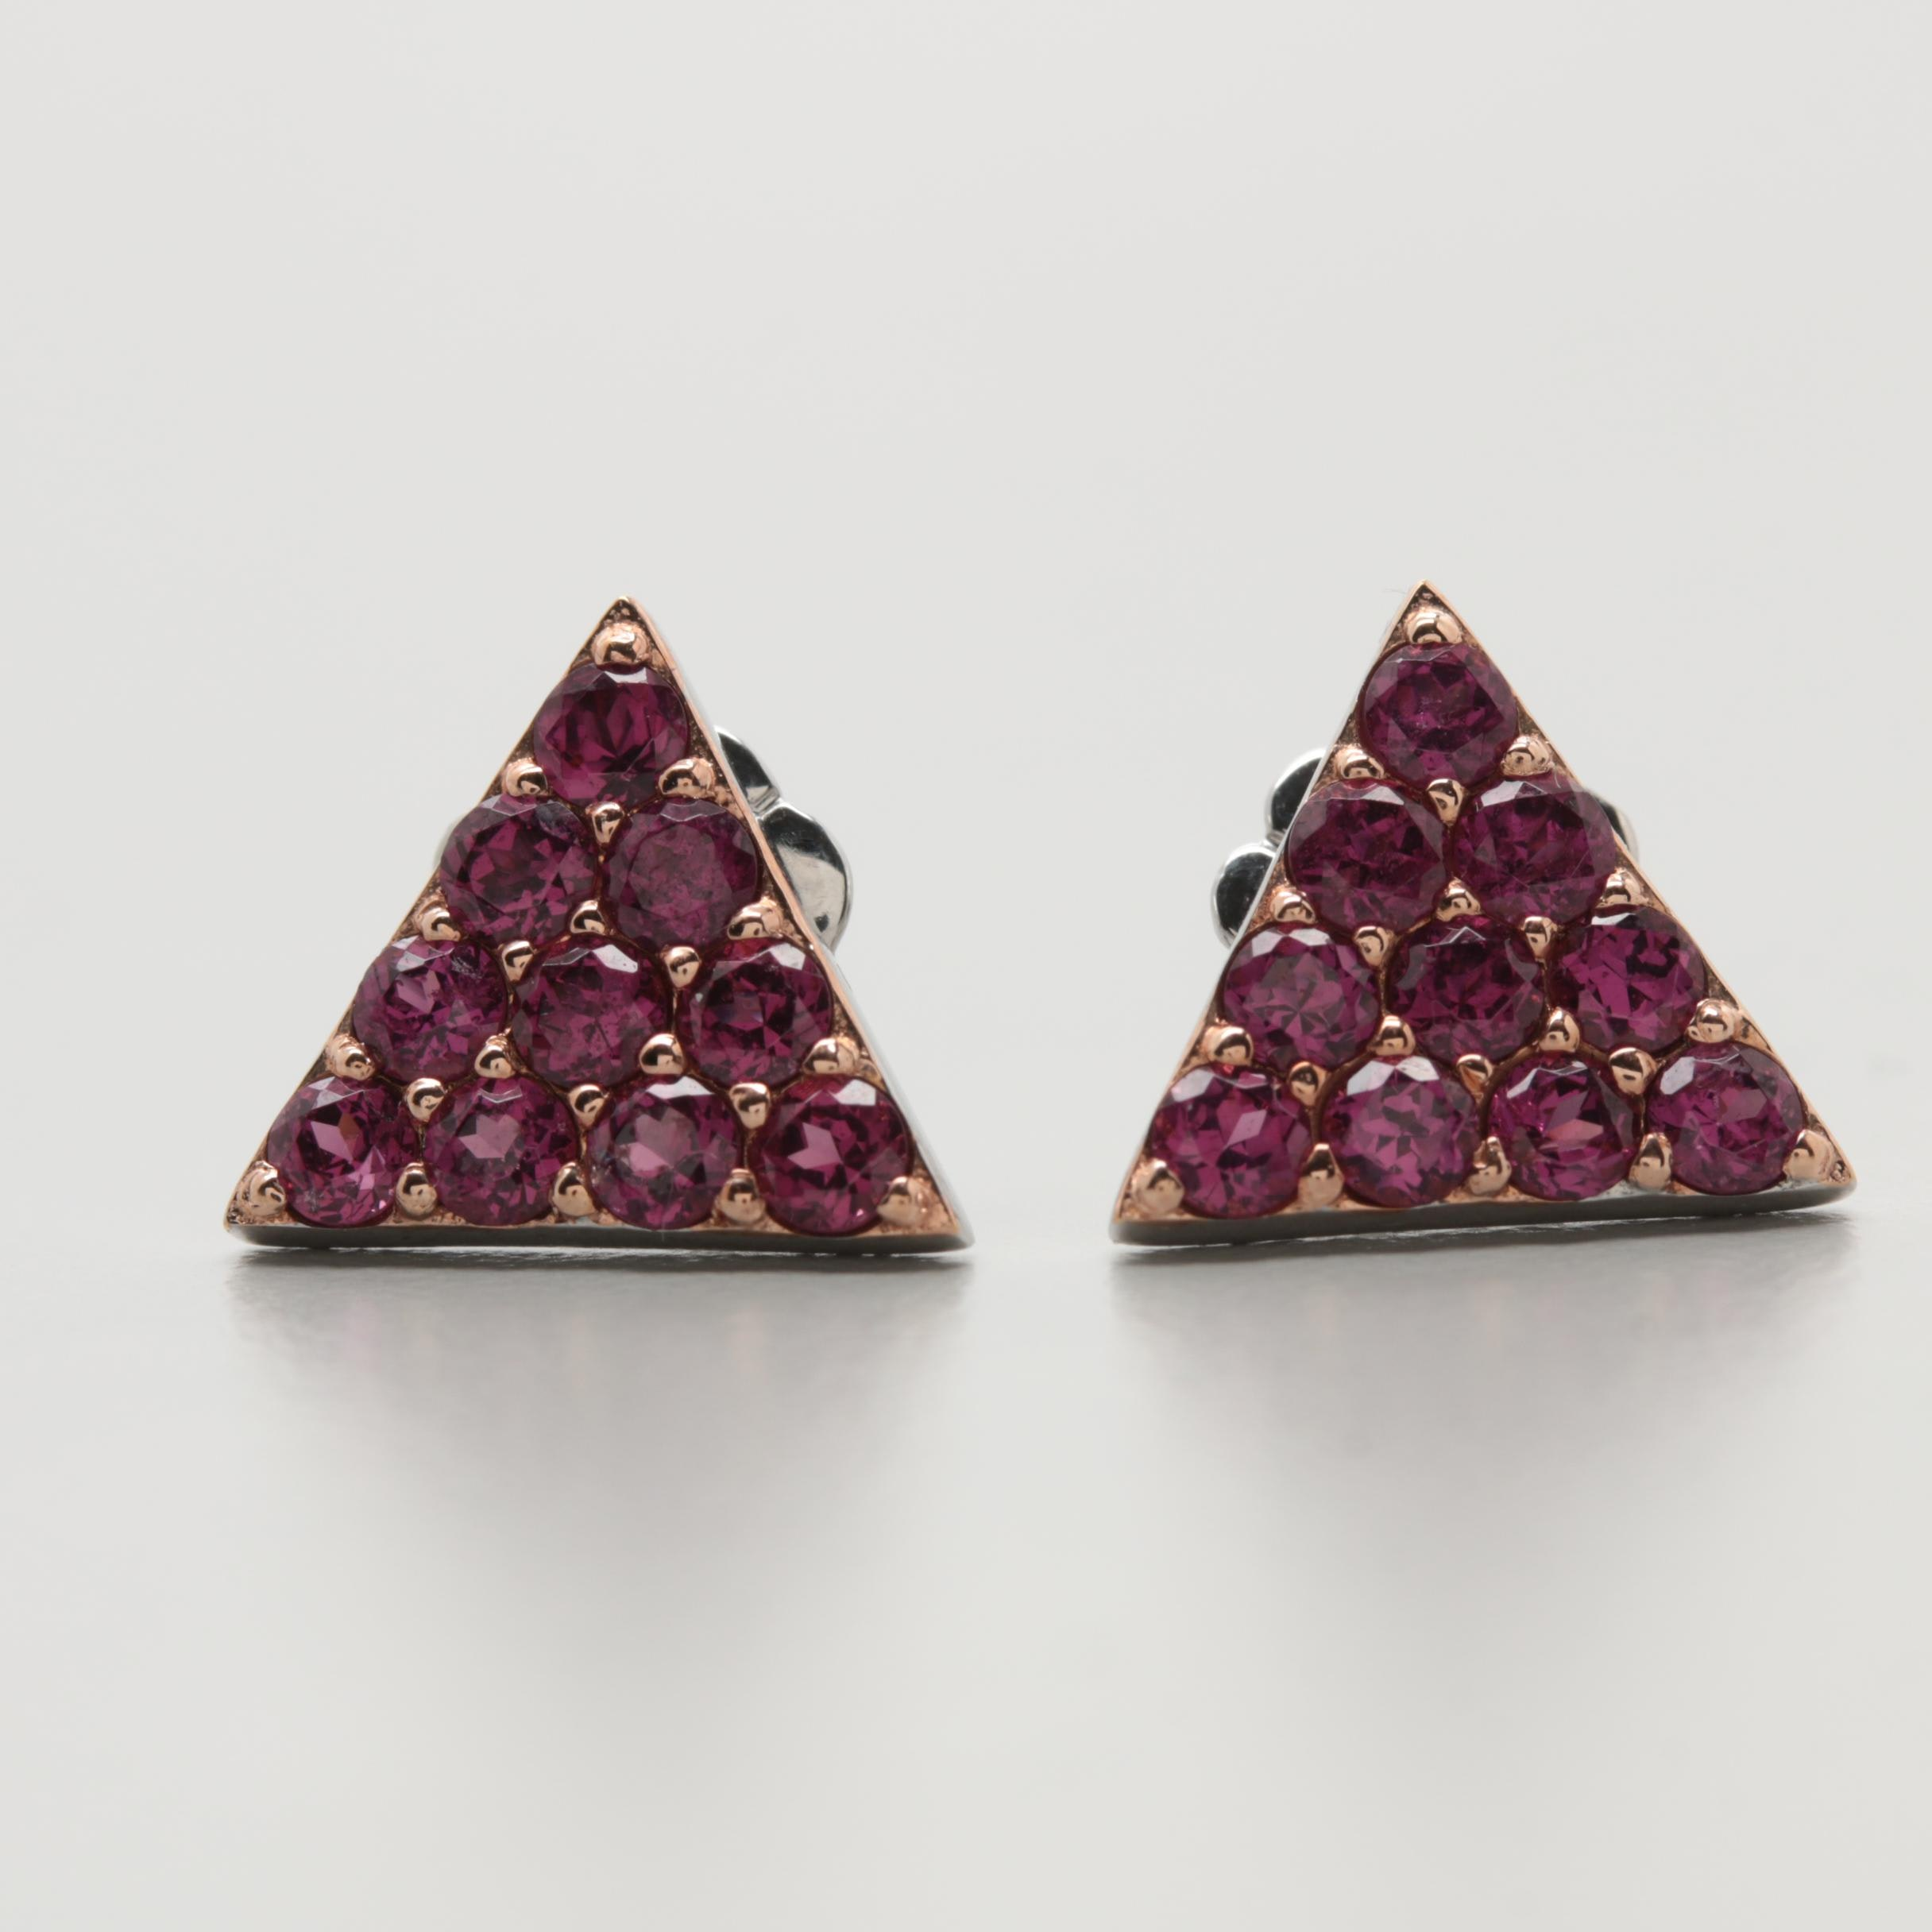 Robert Manse Sterling Silver Rhodolite Garnet Earrings With Gold Wash Accents